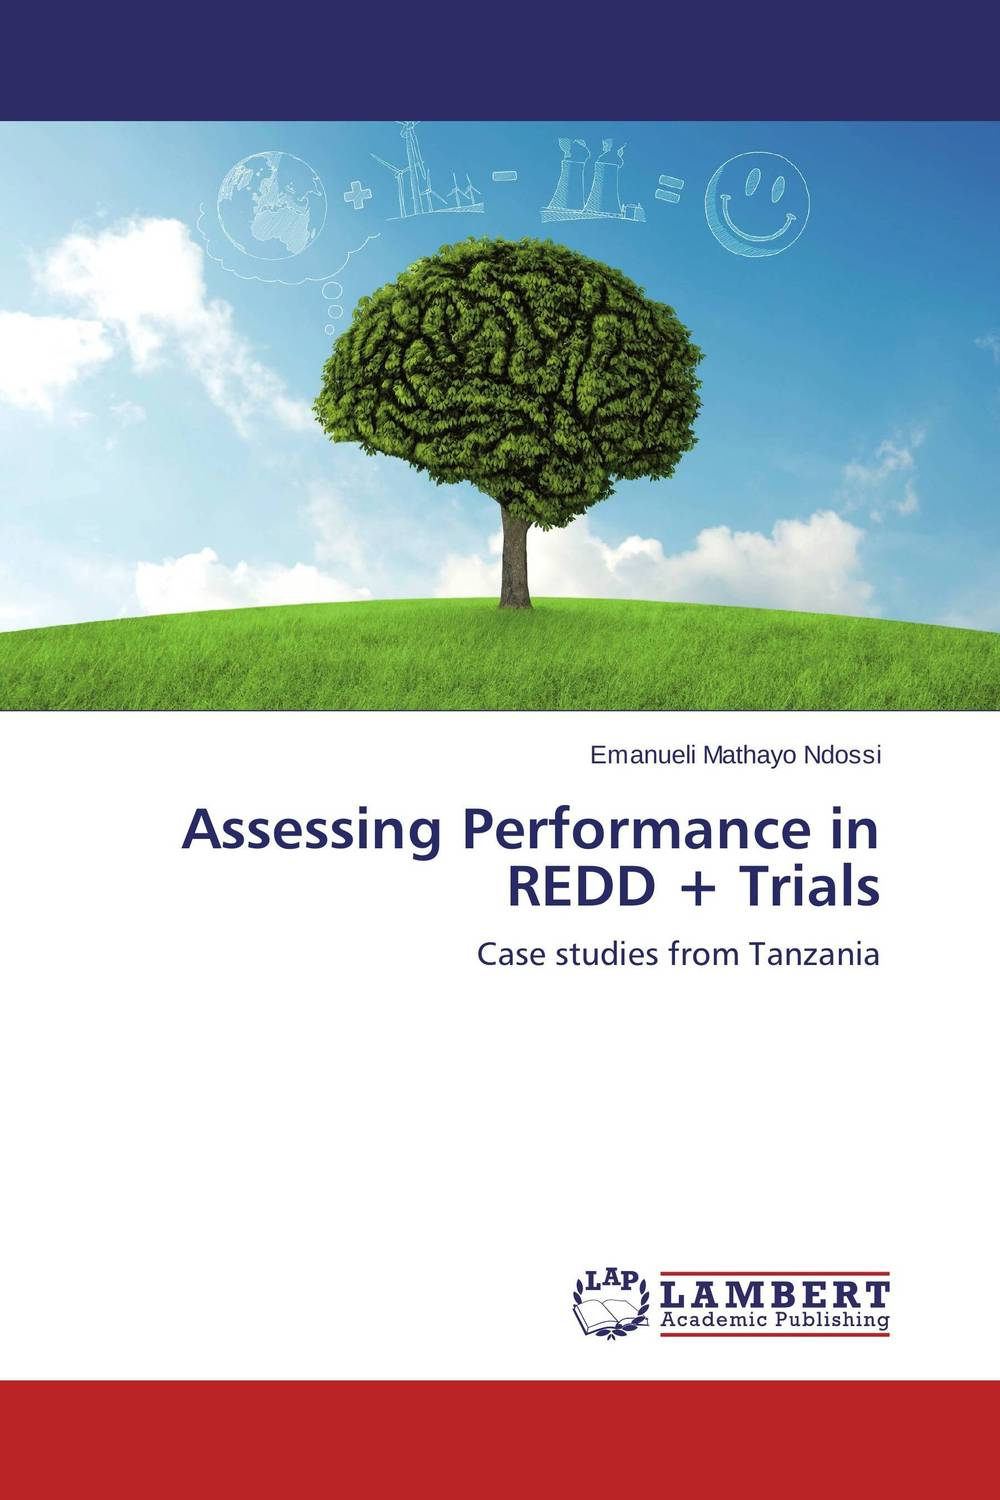 Assessing Performance in REDD + Trials rakesh kumar khandal and sapana kaushik coal tar pitch with reduced pahs and thermosets based on it